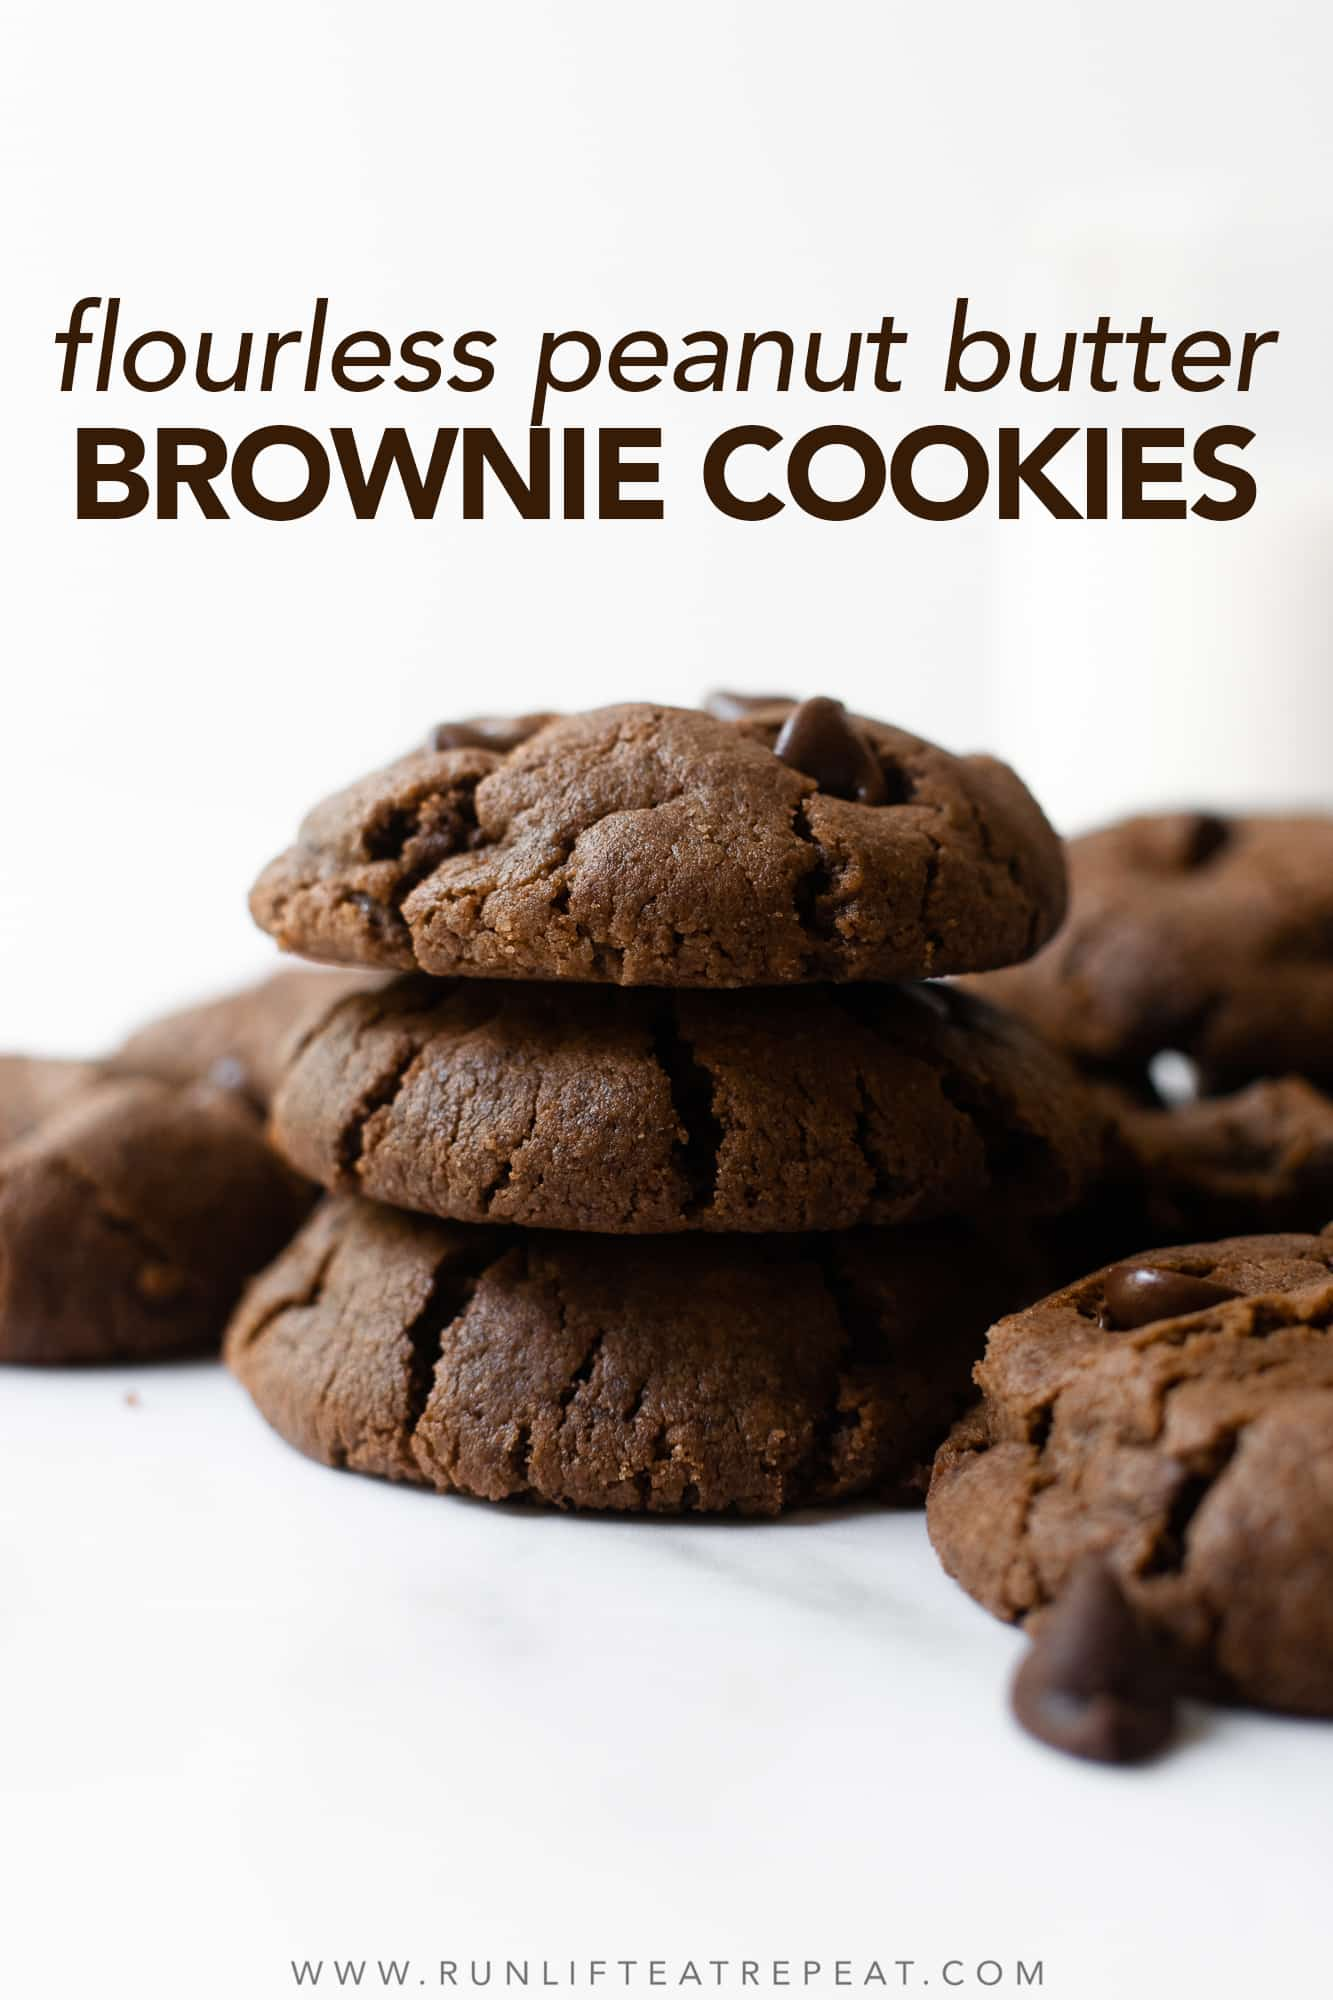 These flourless peanut butter brownie cookies are rich, soft-baked and chewy— that you won't believe that there's no flour or butter! With just 8 ingredients and no chilling, you'll find any excuse to make them. I recommend using mini chocolate chips to pack more into each cookie.